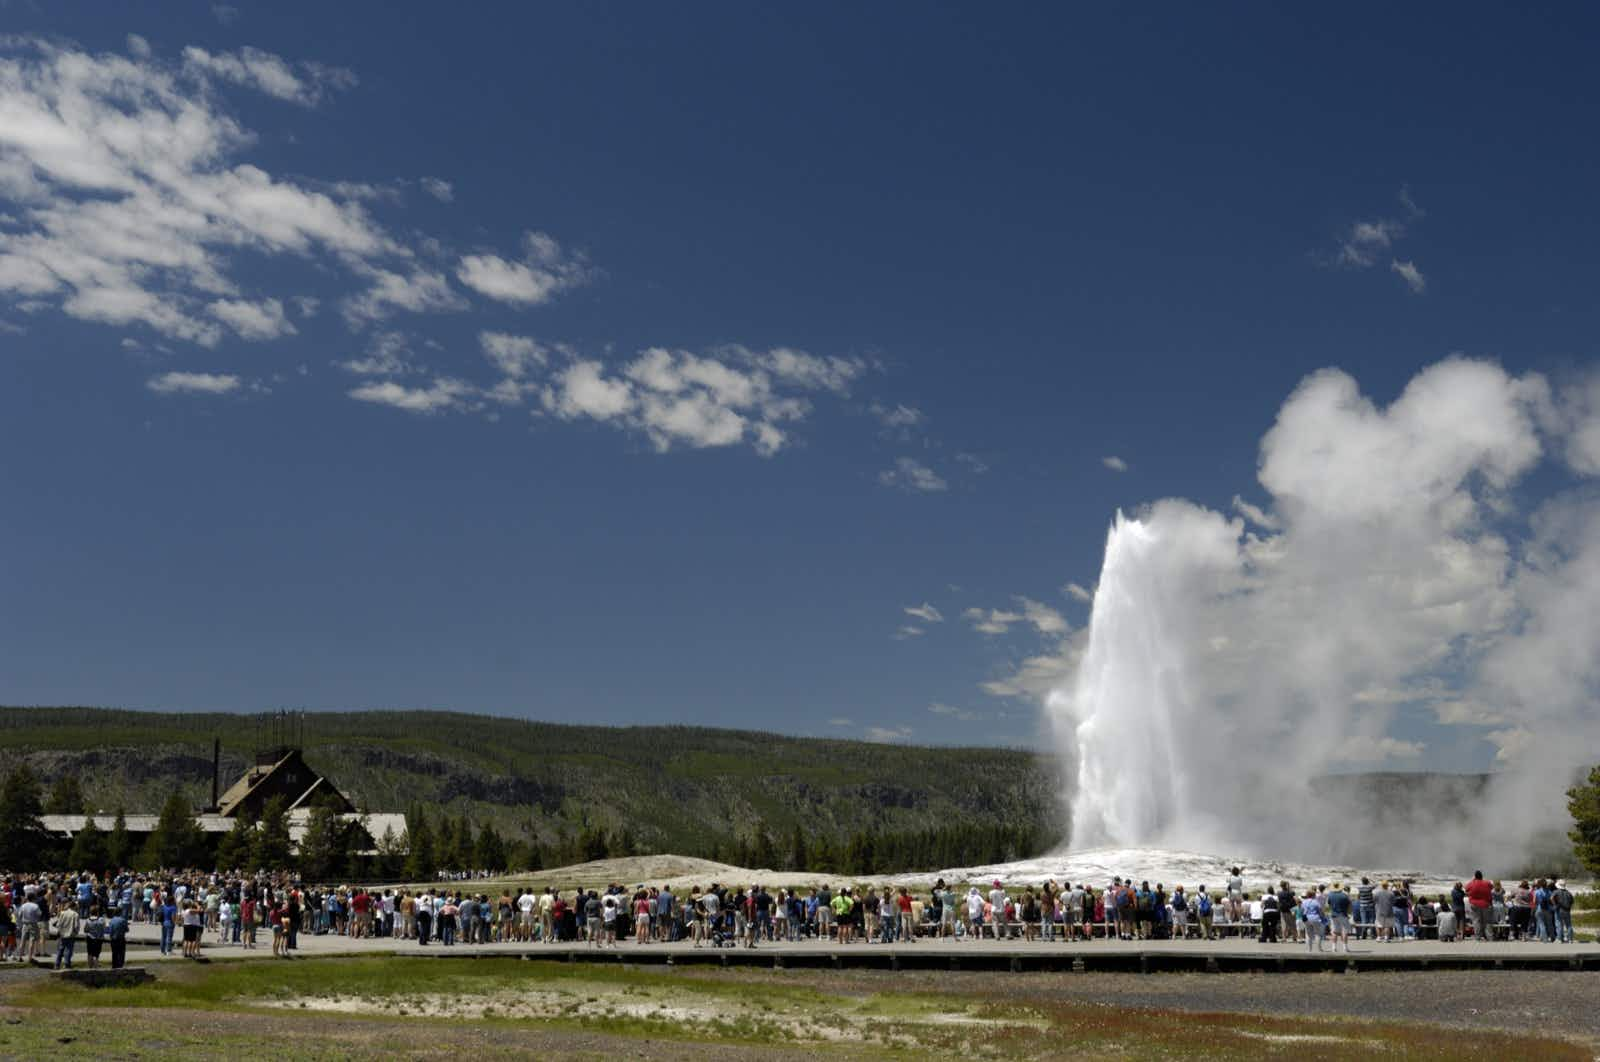 Crowds have surged at many US National Parks, especially Yellowstone © VCNW / Getty Images